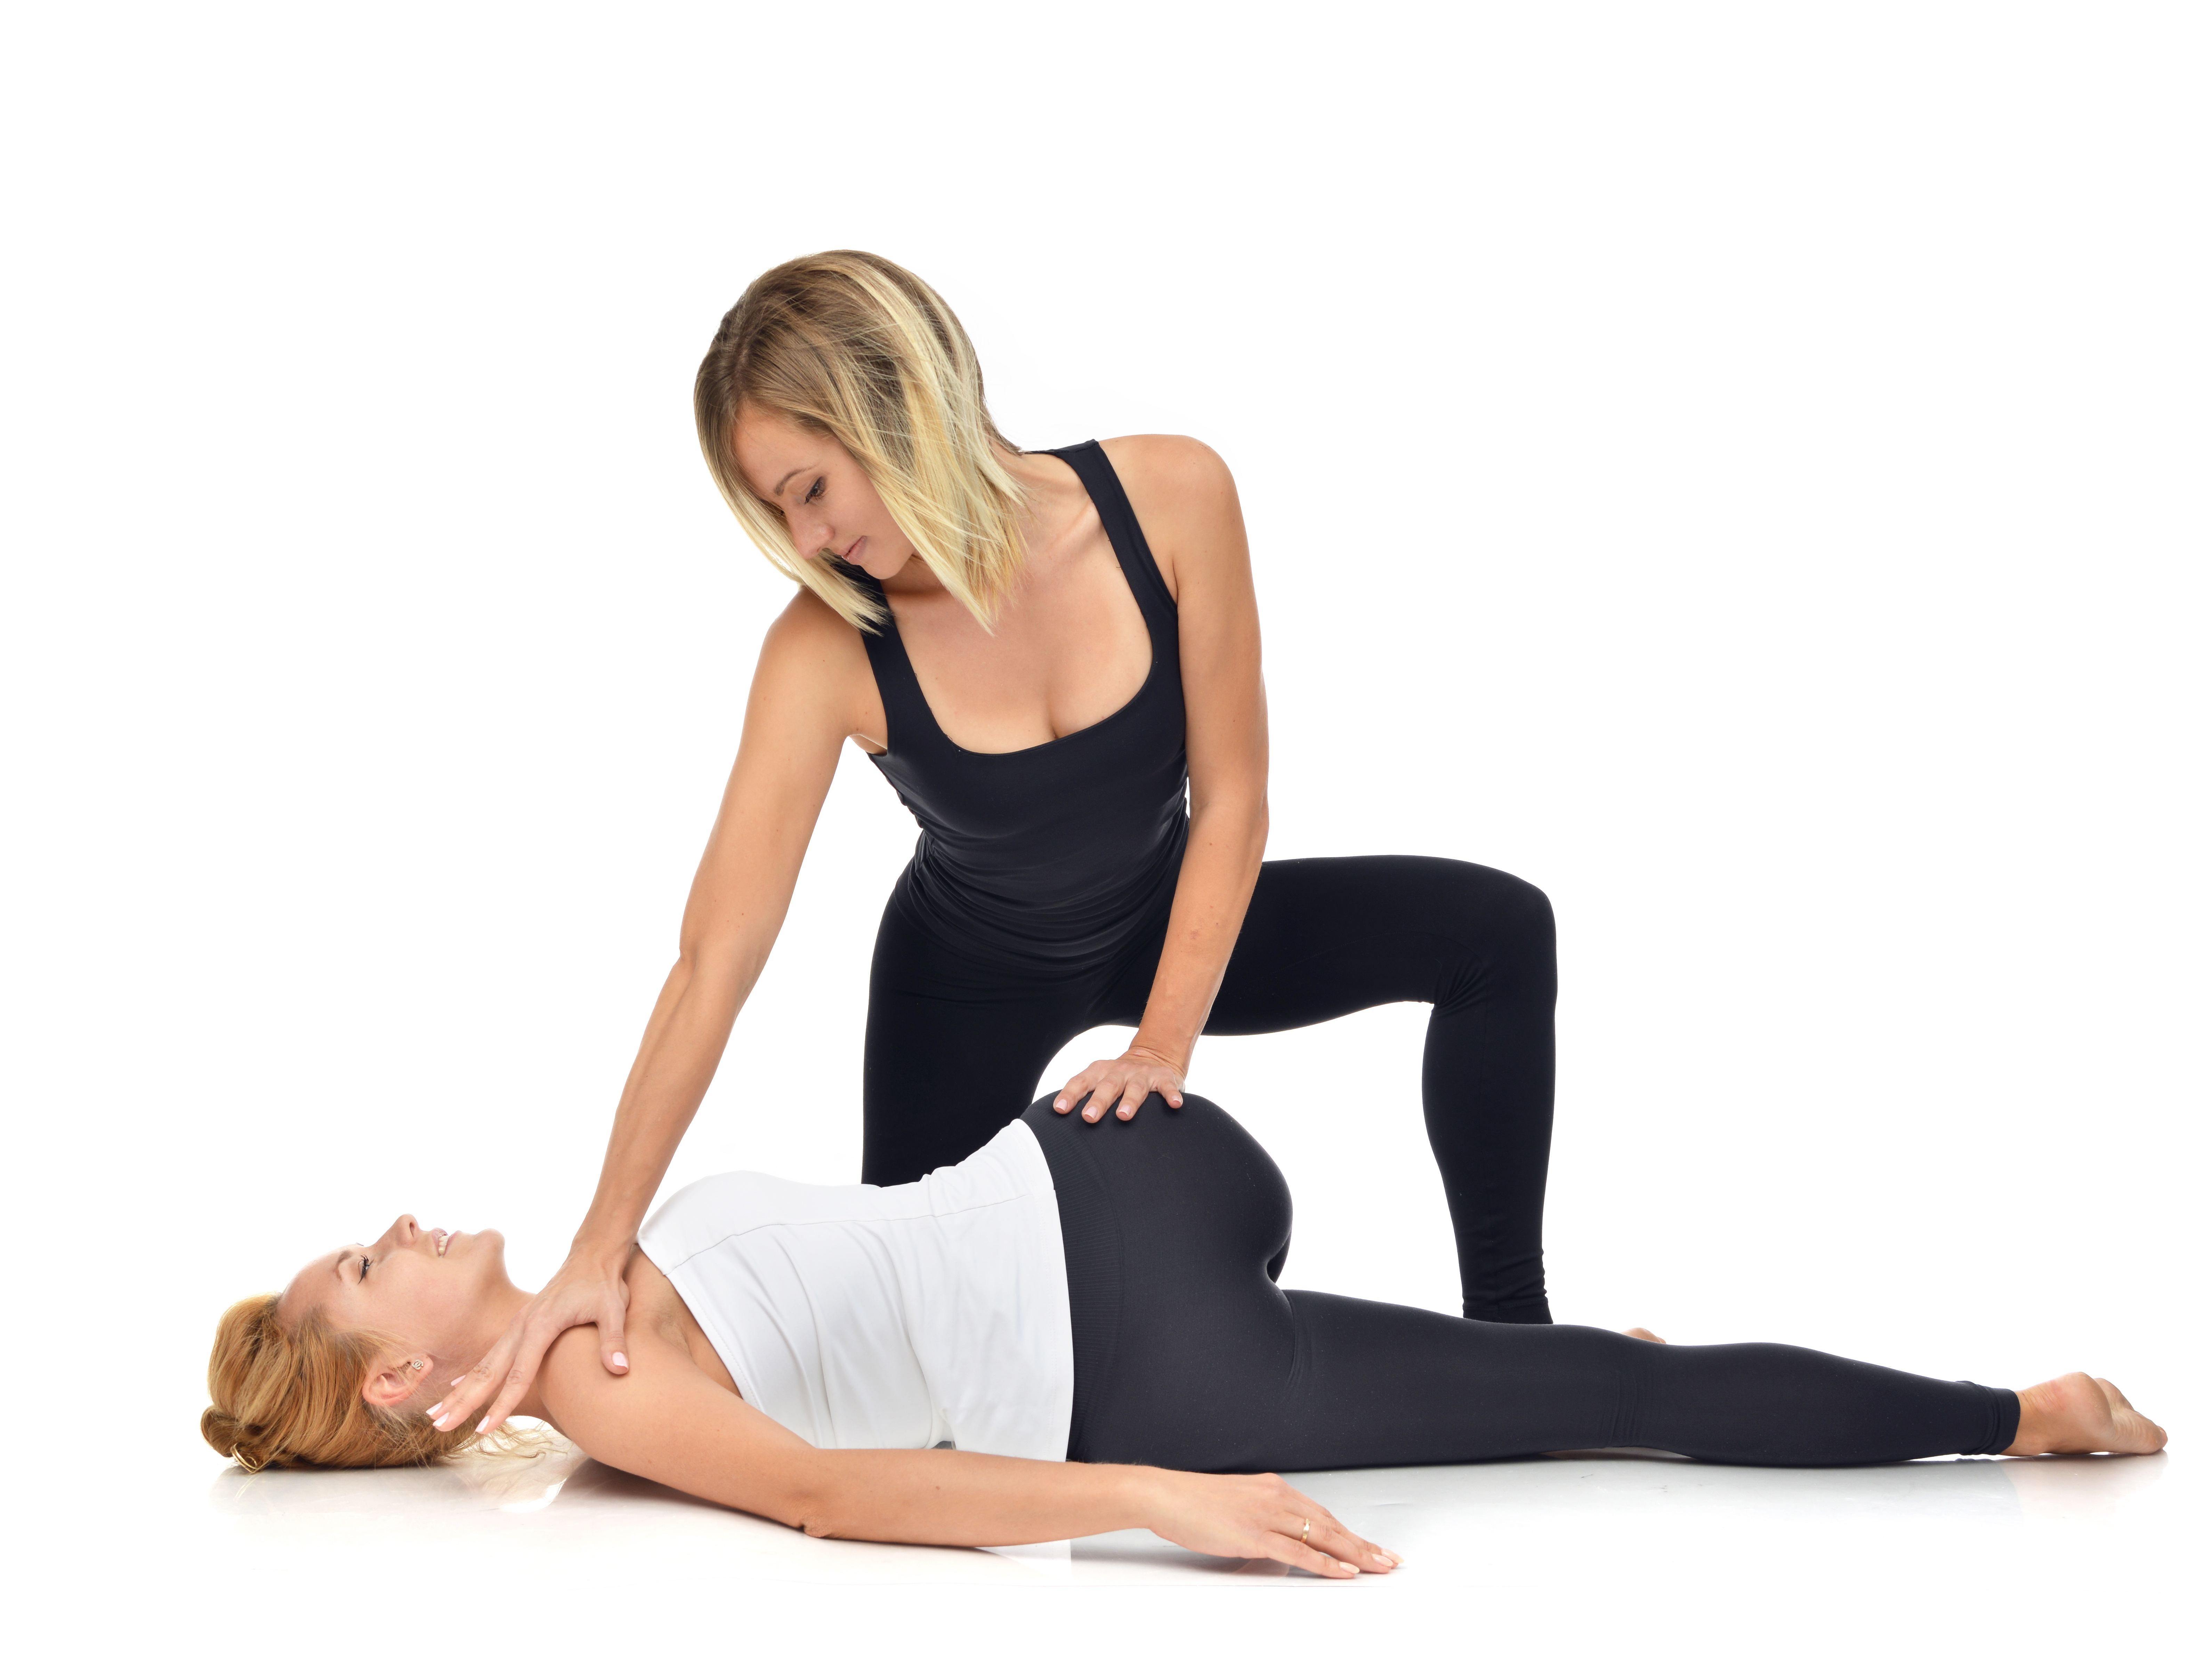 Cancer Exercise Training certify as a Cancer Exercise Specialist